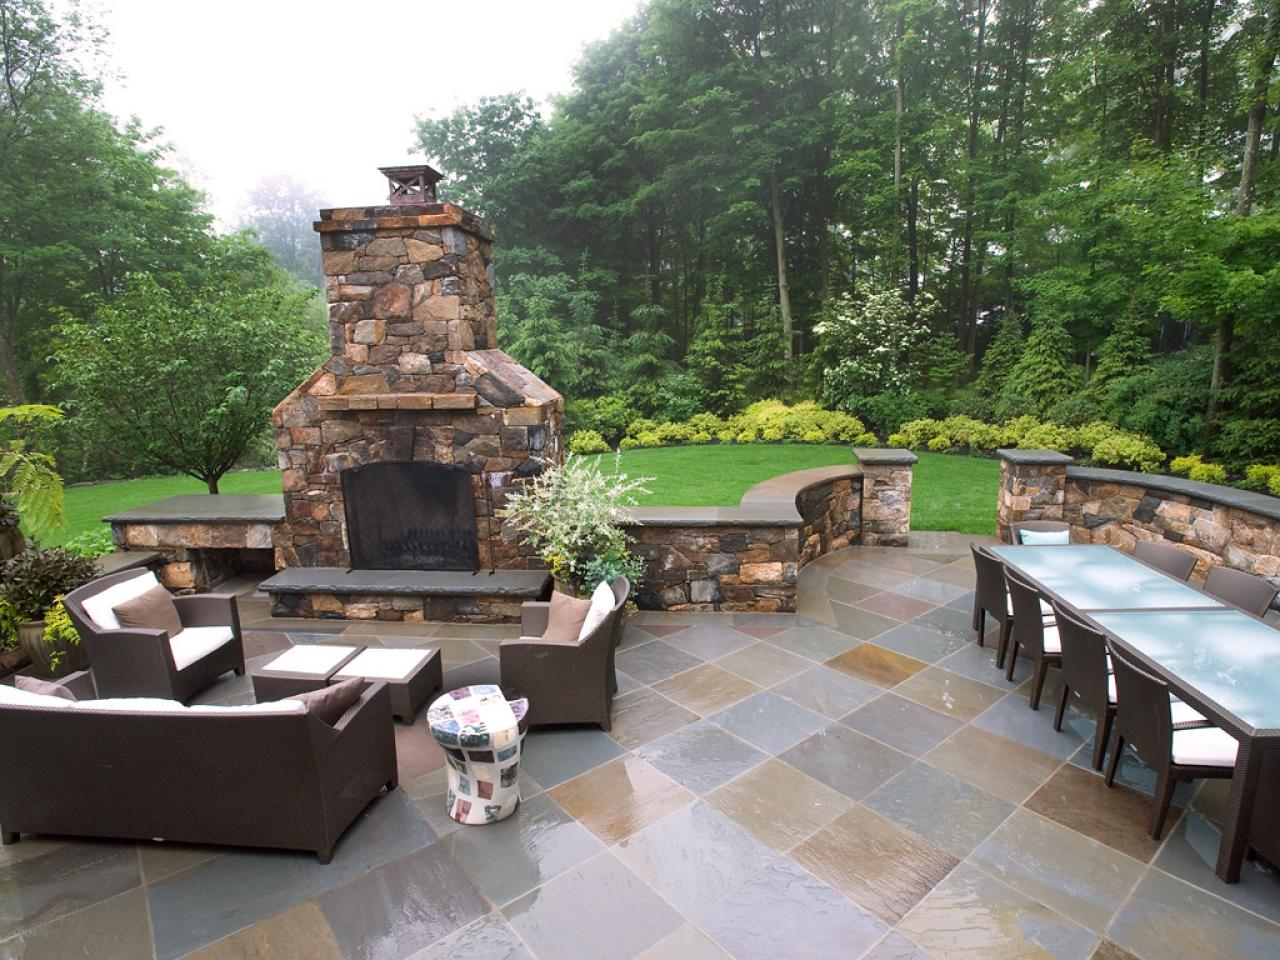 Patio Design & Installation-Grand Prairie TX Professional Landscapers & Outdoor Living Designs-We offer Landscape Design, Outdoor Patios & Pergolas, Outdoor Living Spaces, Stonescapes, Residential & Commercial Landscaping, Irrigation Installation & Repairs, Drainage Systems, Landscape Lighting, Outdoor Living Spaces, Tree Service, Lawn Service, and more.